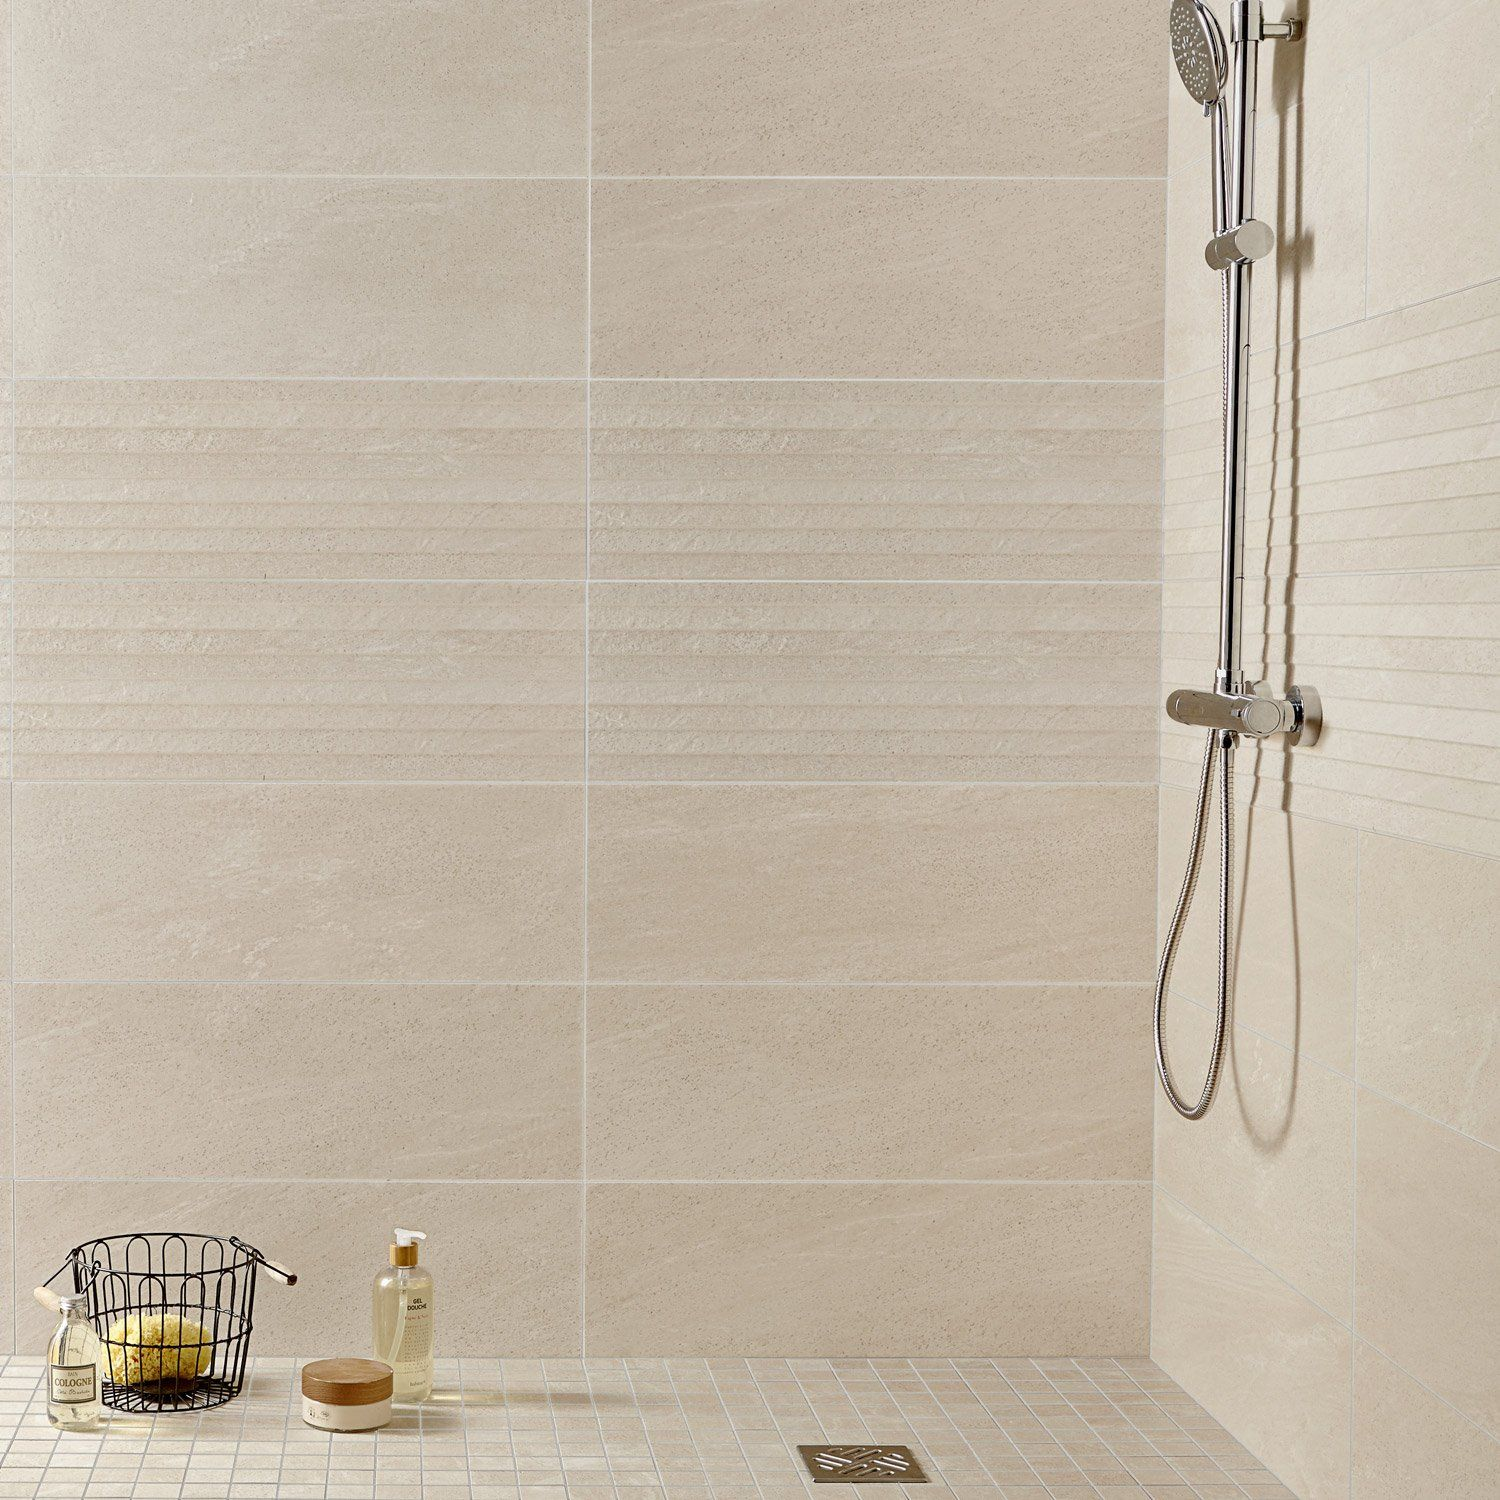 Support:Pâte blanche Destination du carrelage:Mur ... | Bath ...